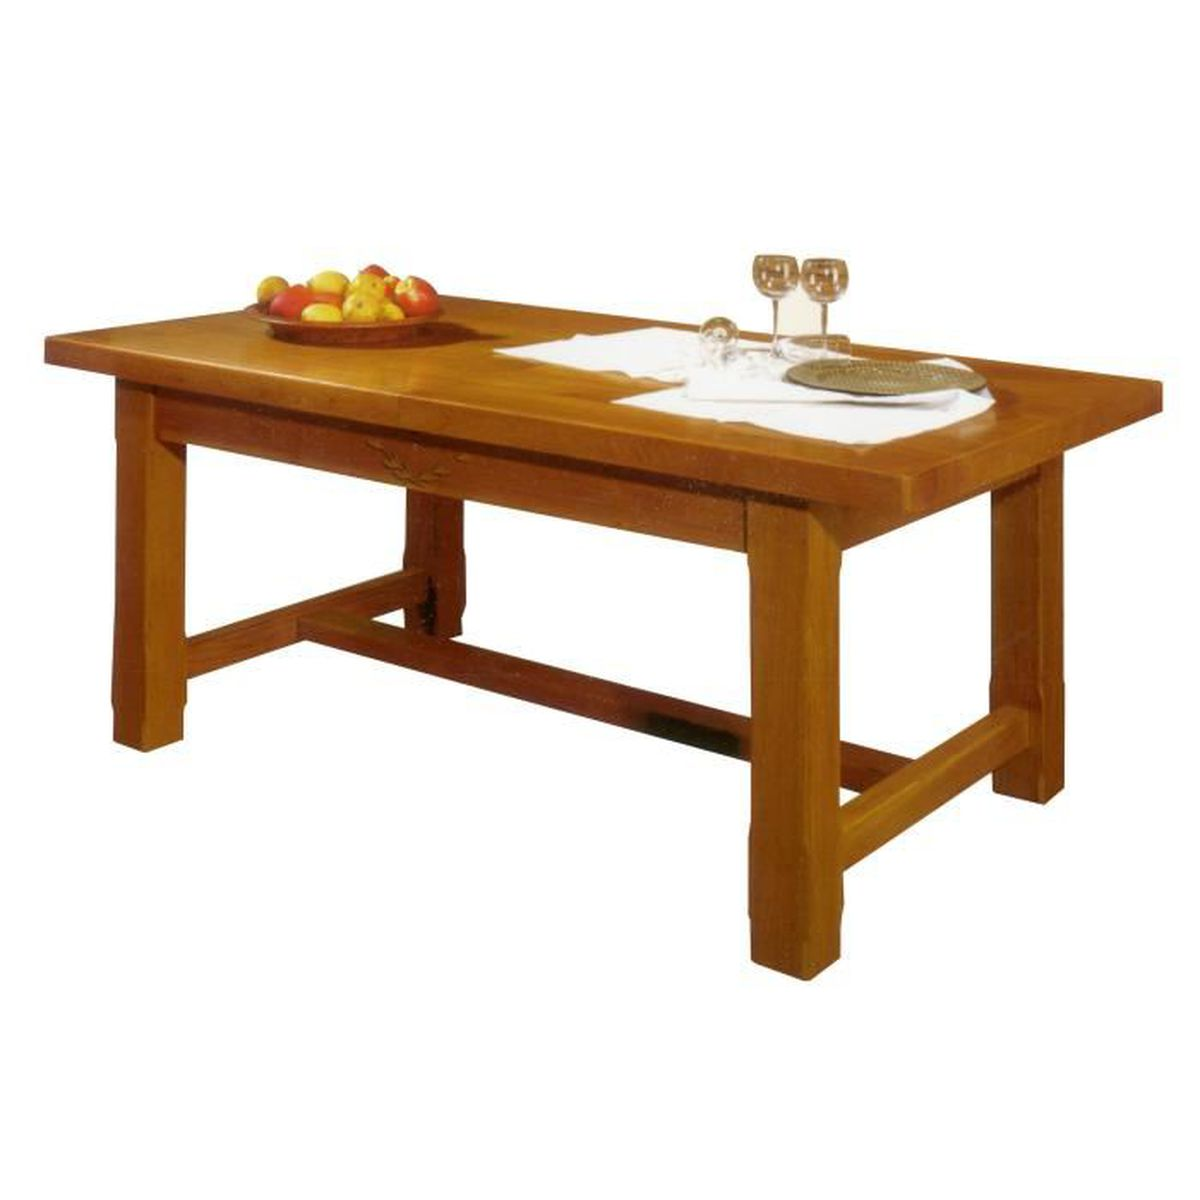 Table de ferme avec 2 allonges en ch ne massif orge for Table a manger avec allonges